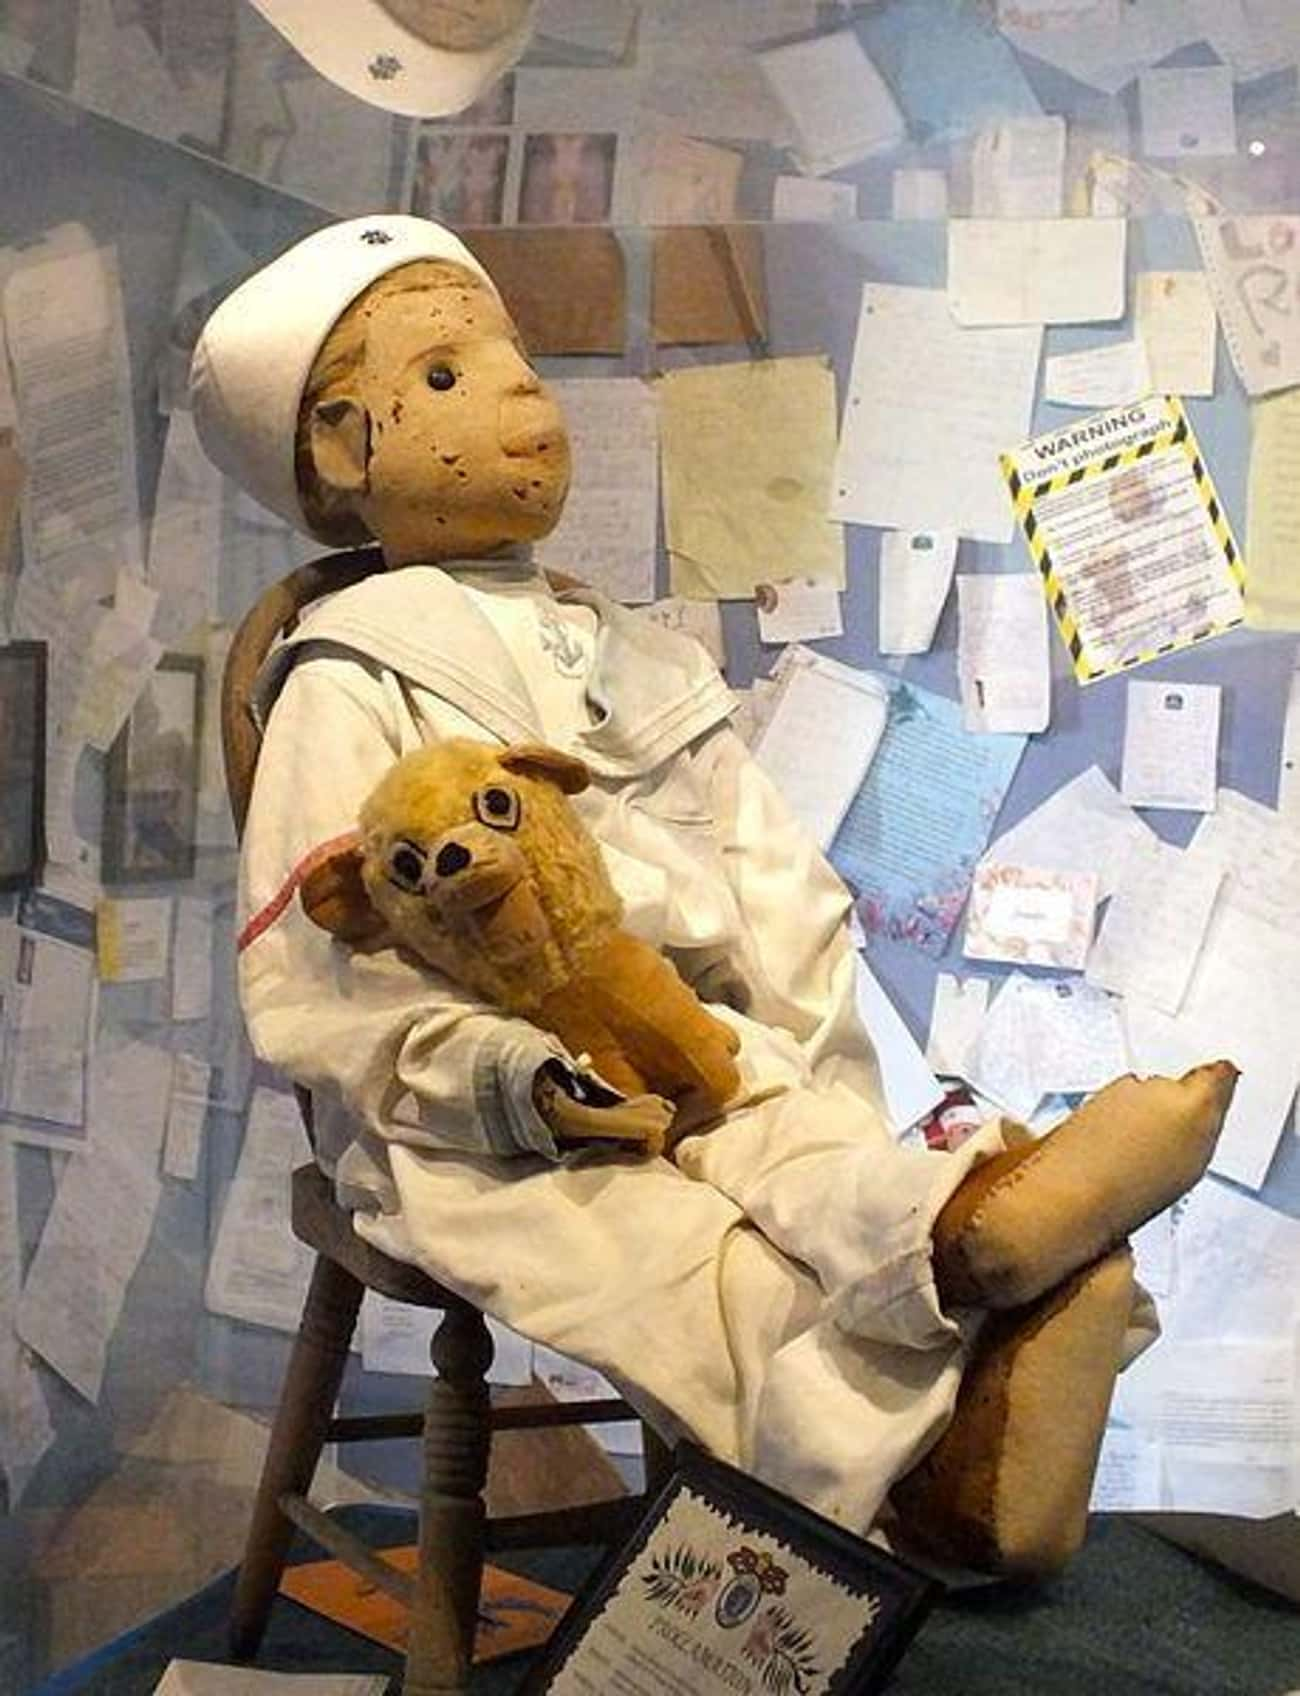 Robert The Doll Is On Display  is listed (or ranked) 2 on the list 10 Terrifying Creepypastas With Real-Life Roots